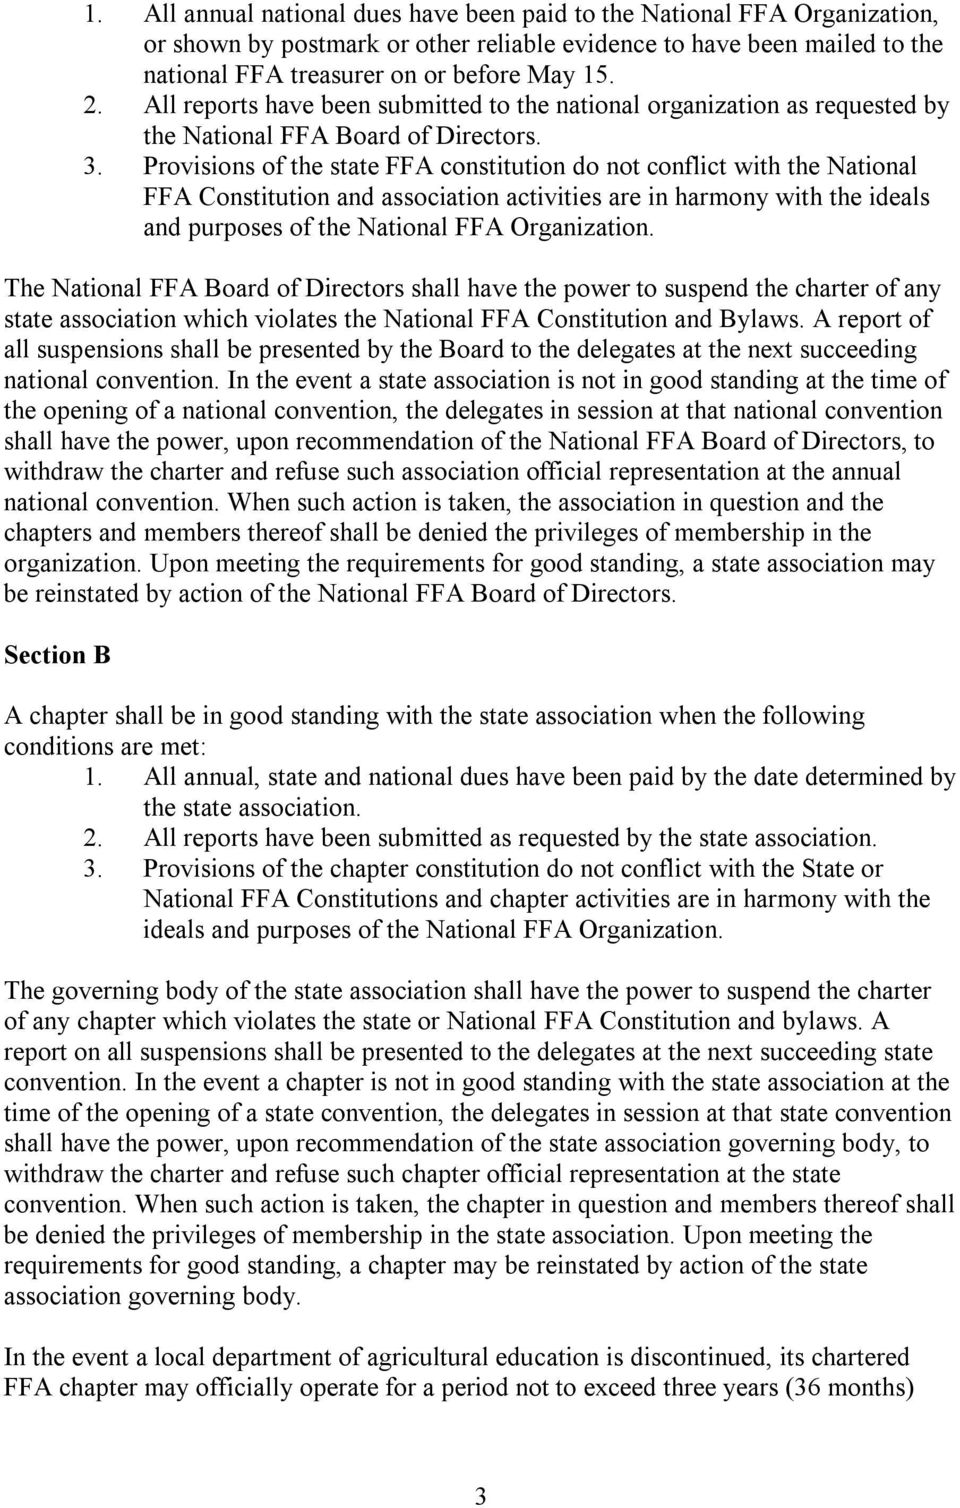 Provisions of the state FFA constitution do not conflict with the National FFA Constitution and association activities are in harmony with the ideals and purposes of the National FFA Organization.